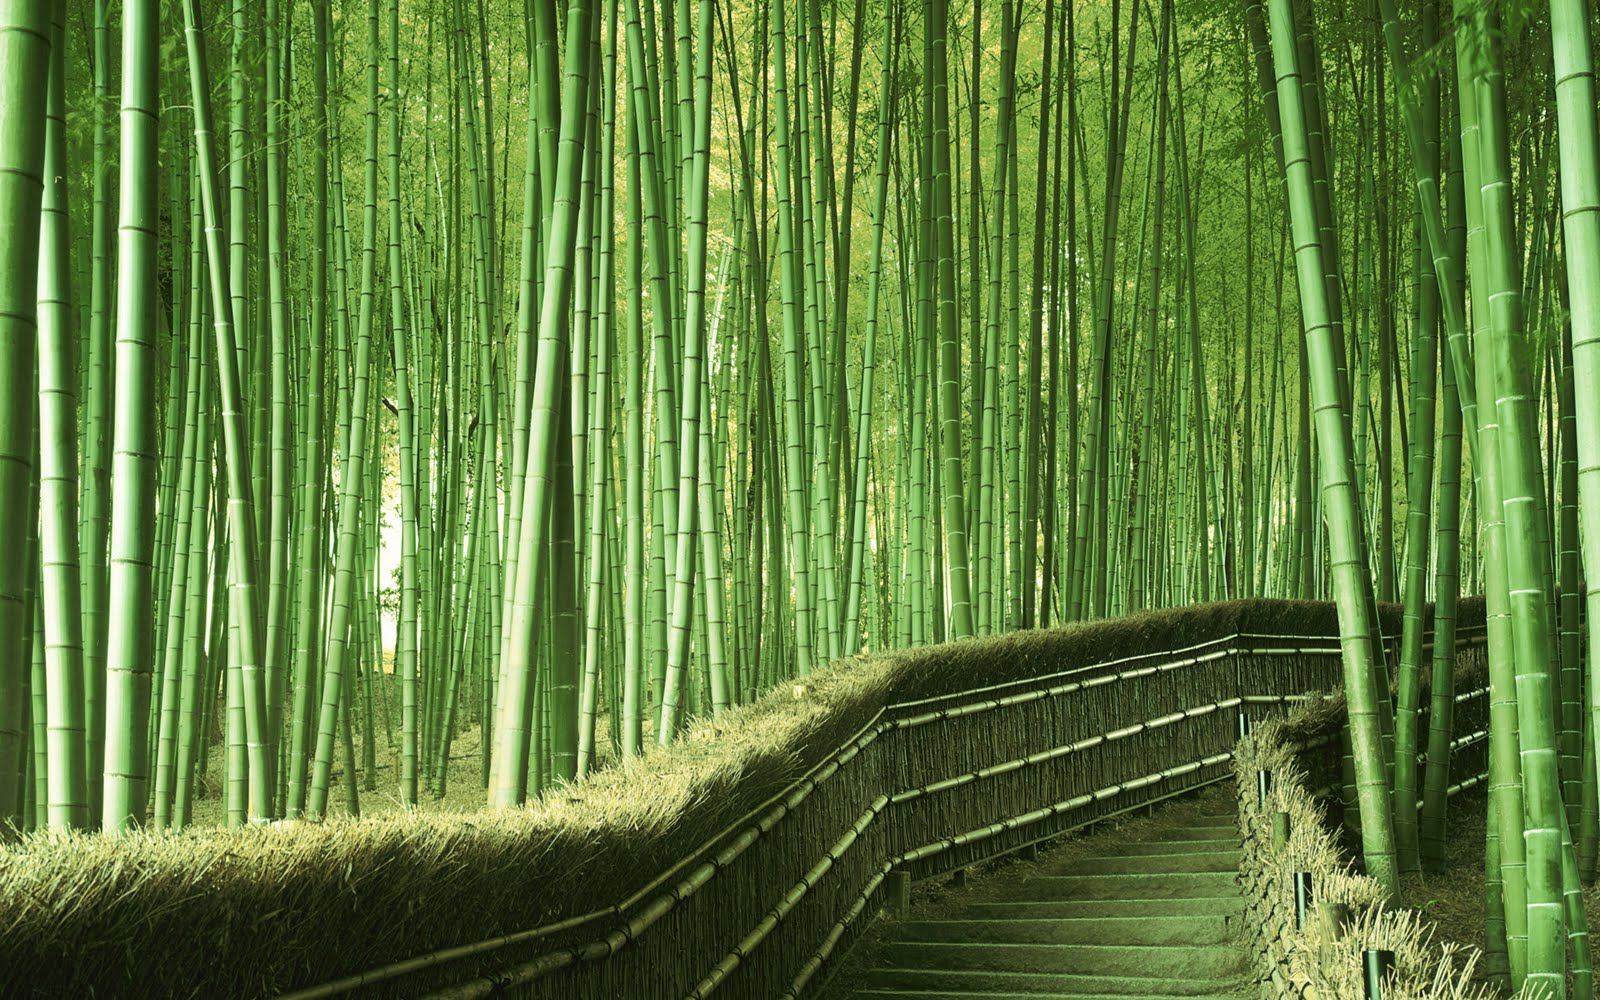 Hd bamboo plant wallpapers desktop wallpapers for Bamboo wallpaper